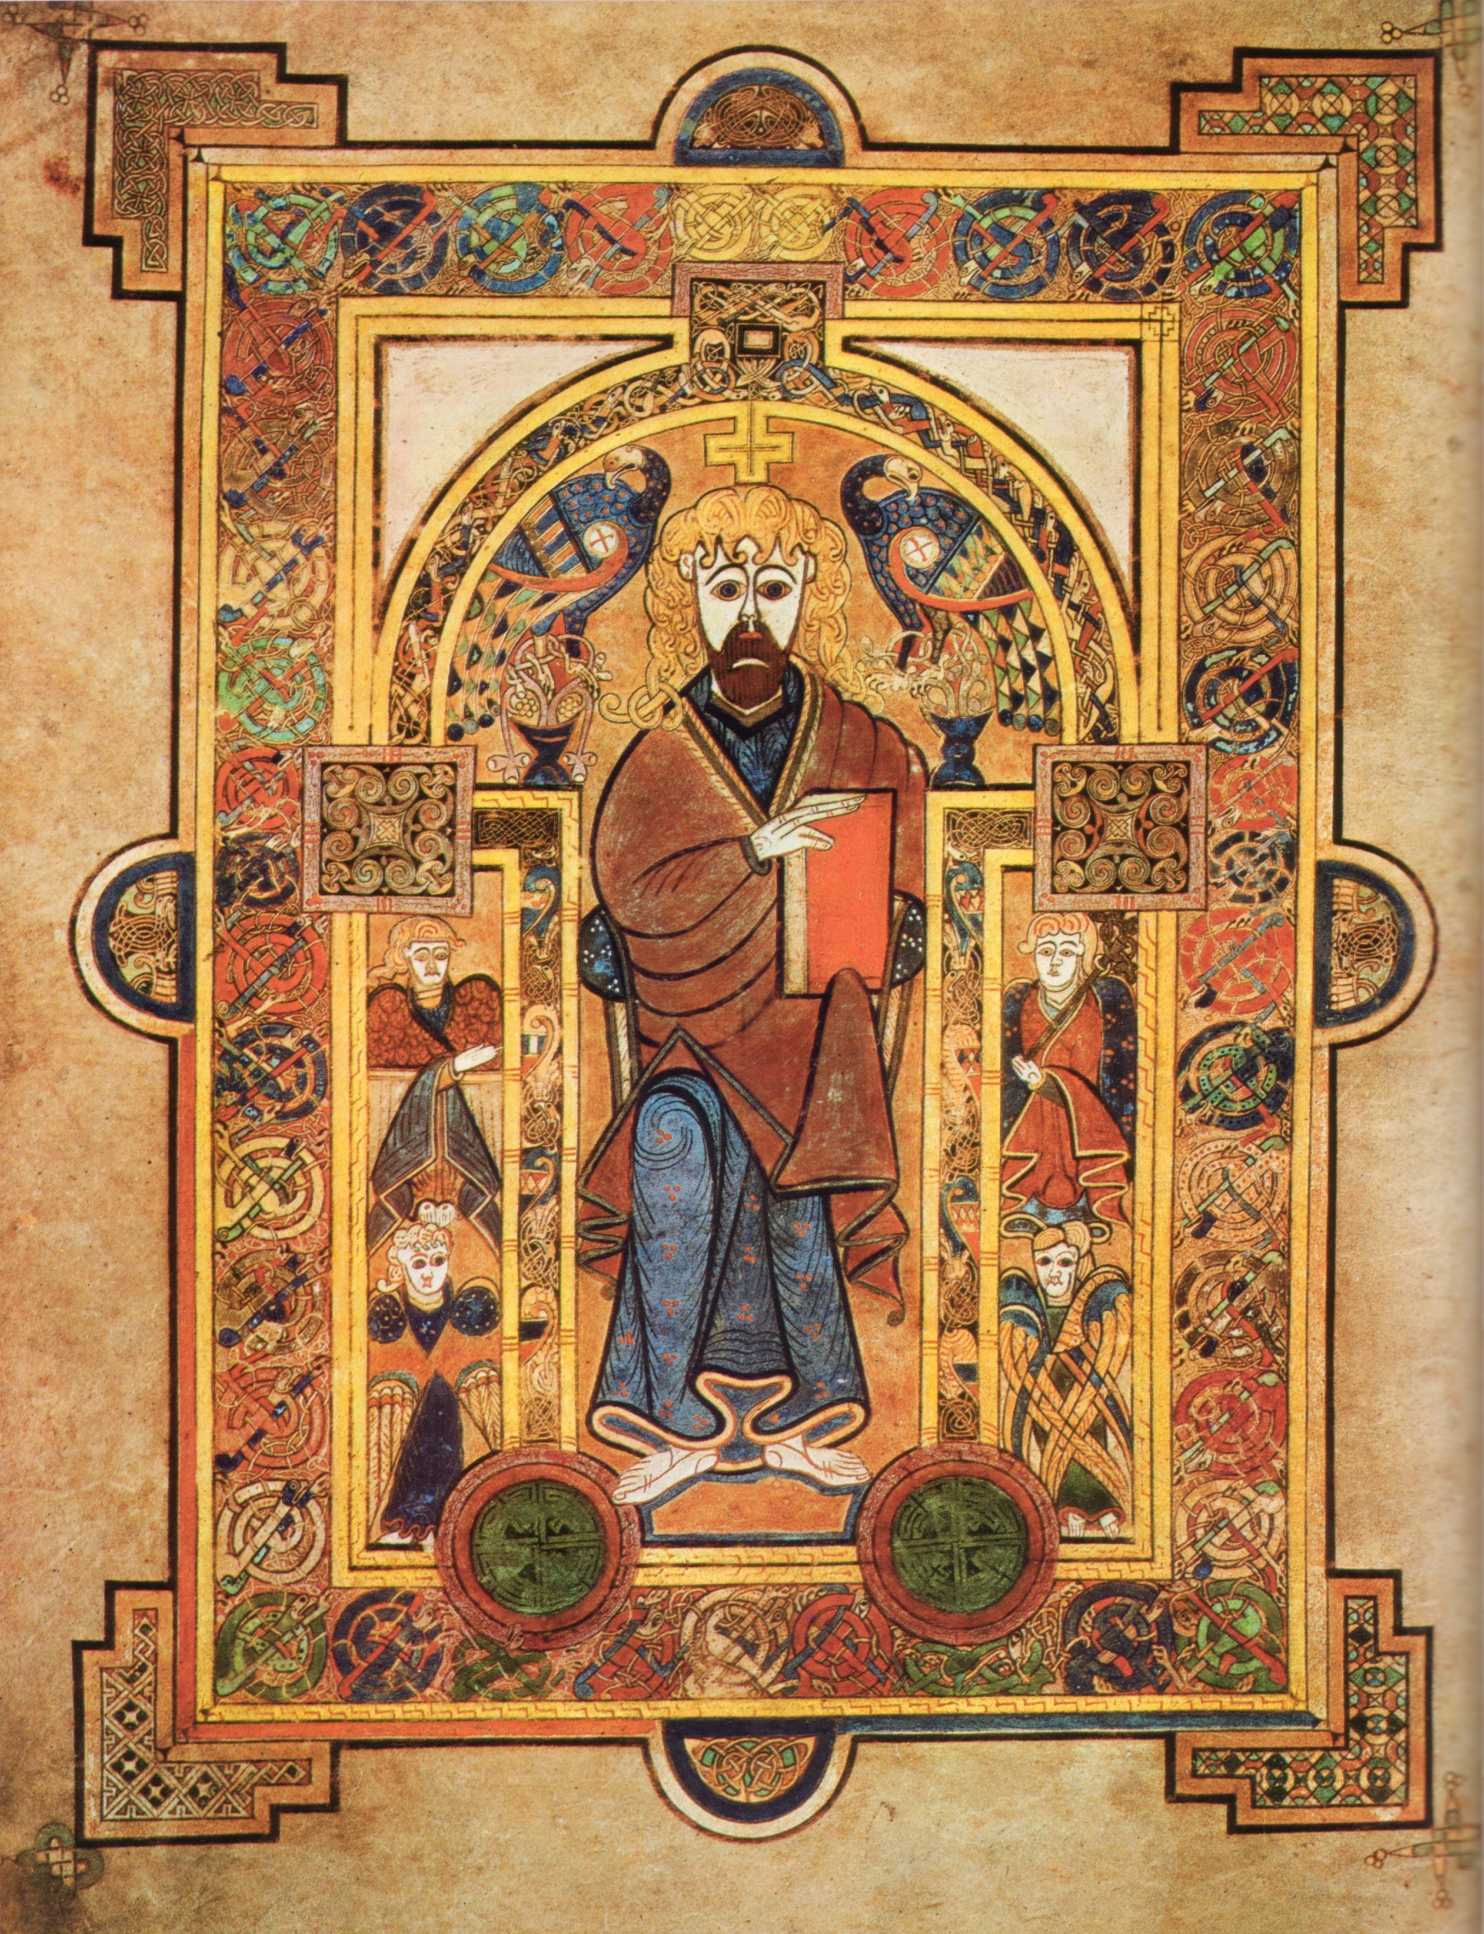 E Book Of Kells Ireland - Wikipedia  the free